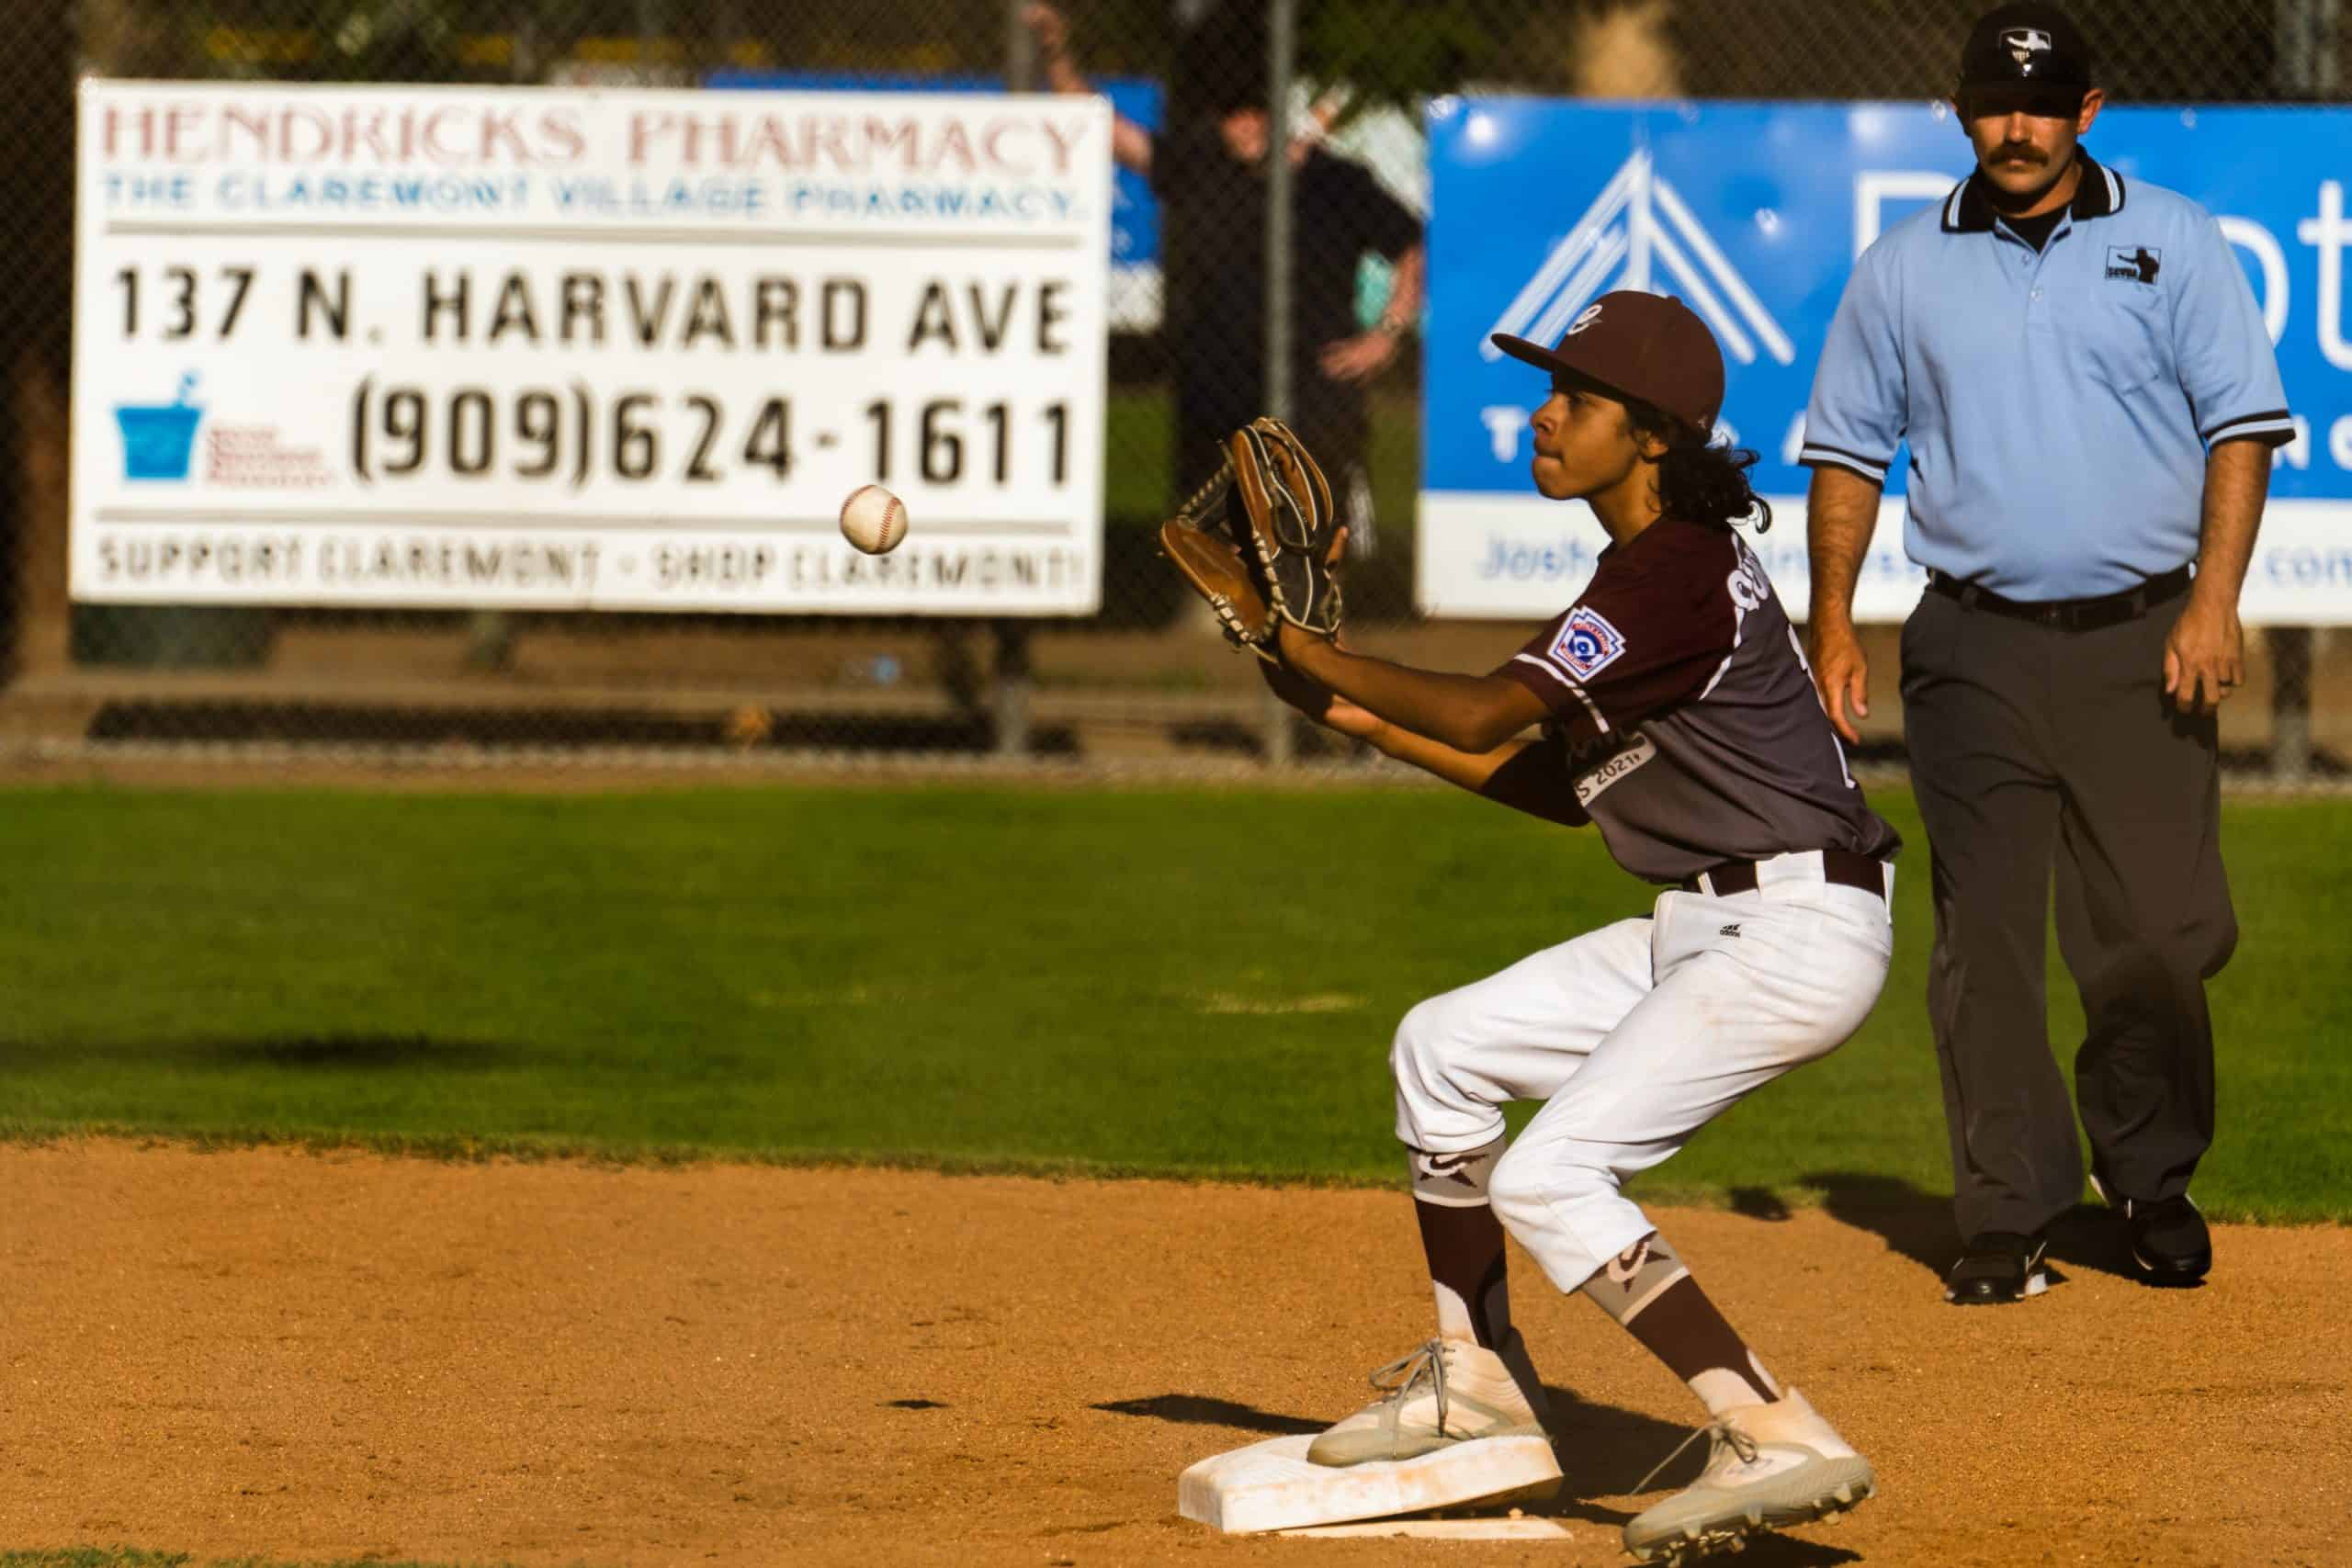 Claremont Little League All Star Game